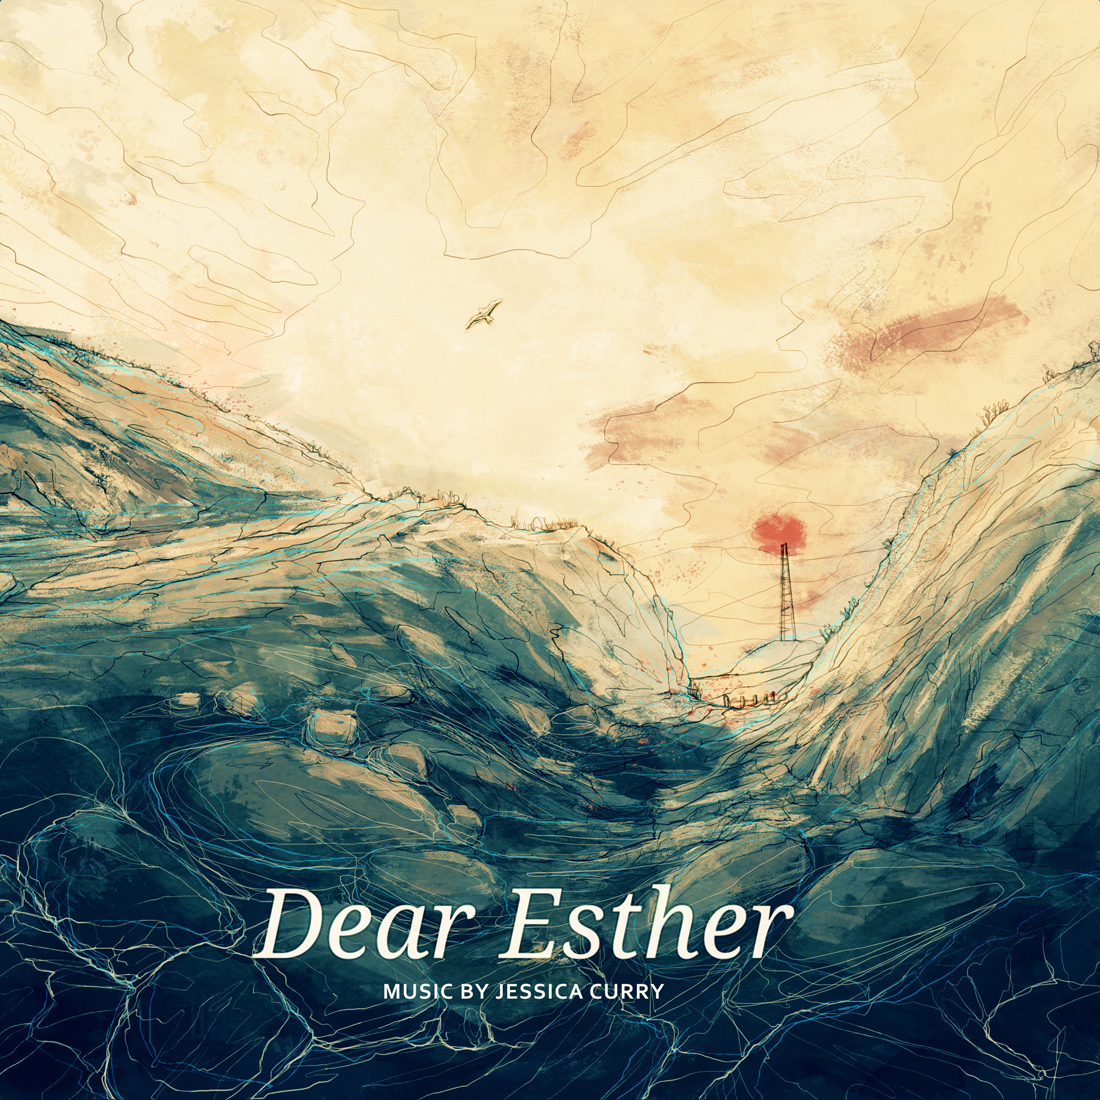 Dear_Esther_Artwork.jpg